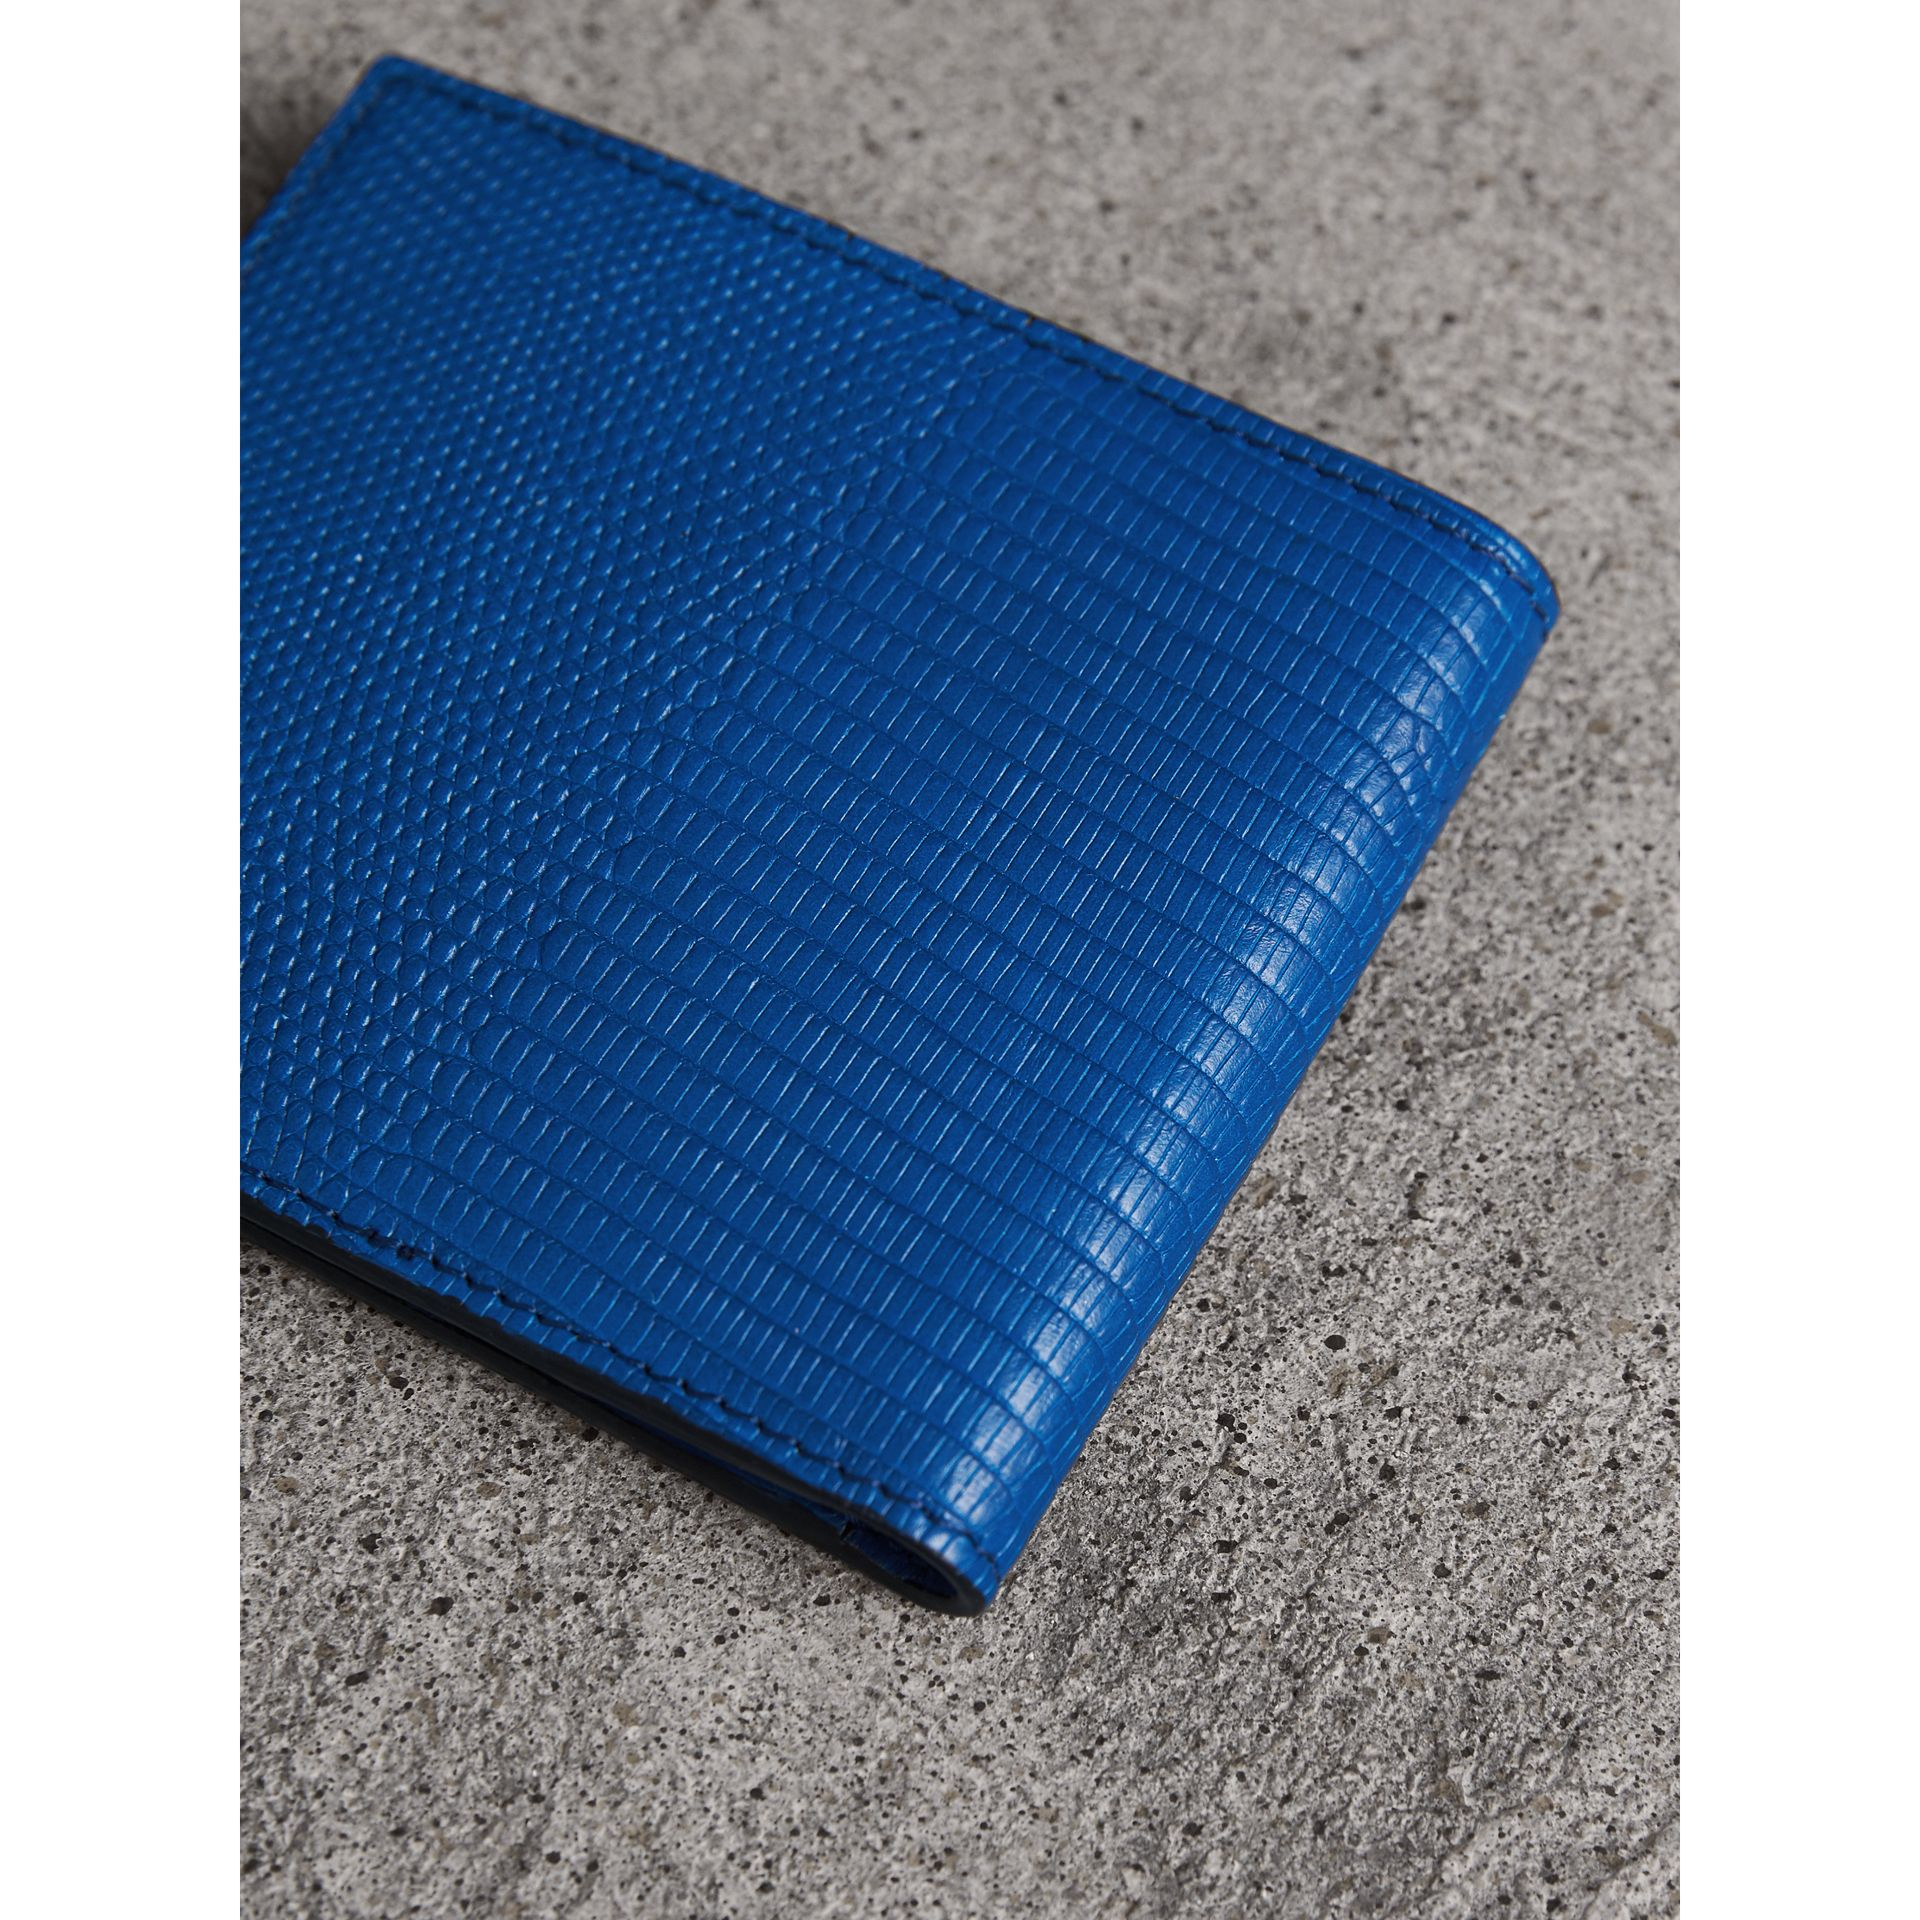 Lizard International Bifold Wallet in Sapphire Blue - Men | Burberry United Kingdom - gallery image 2